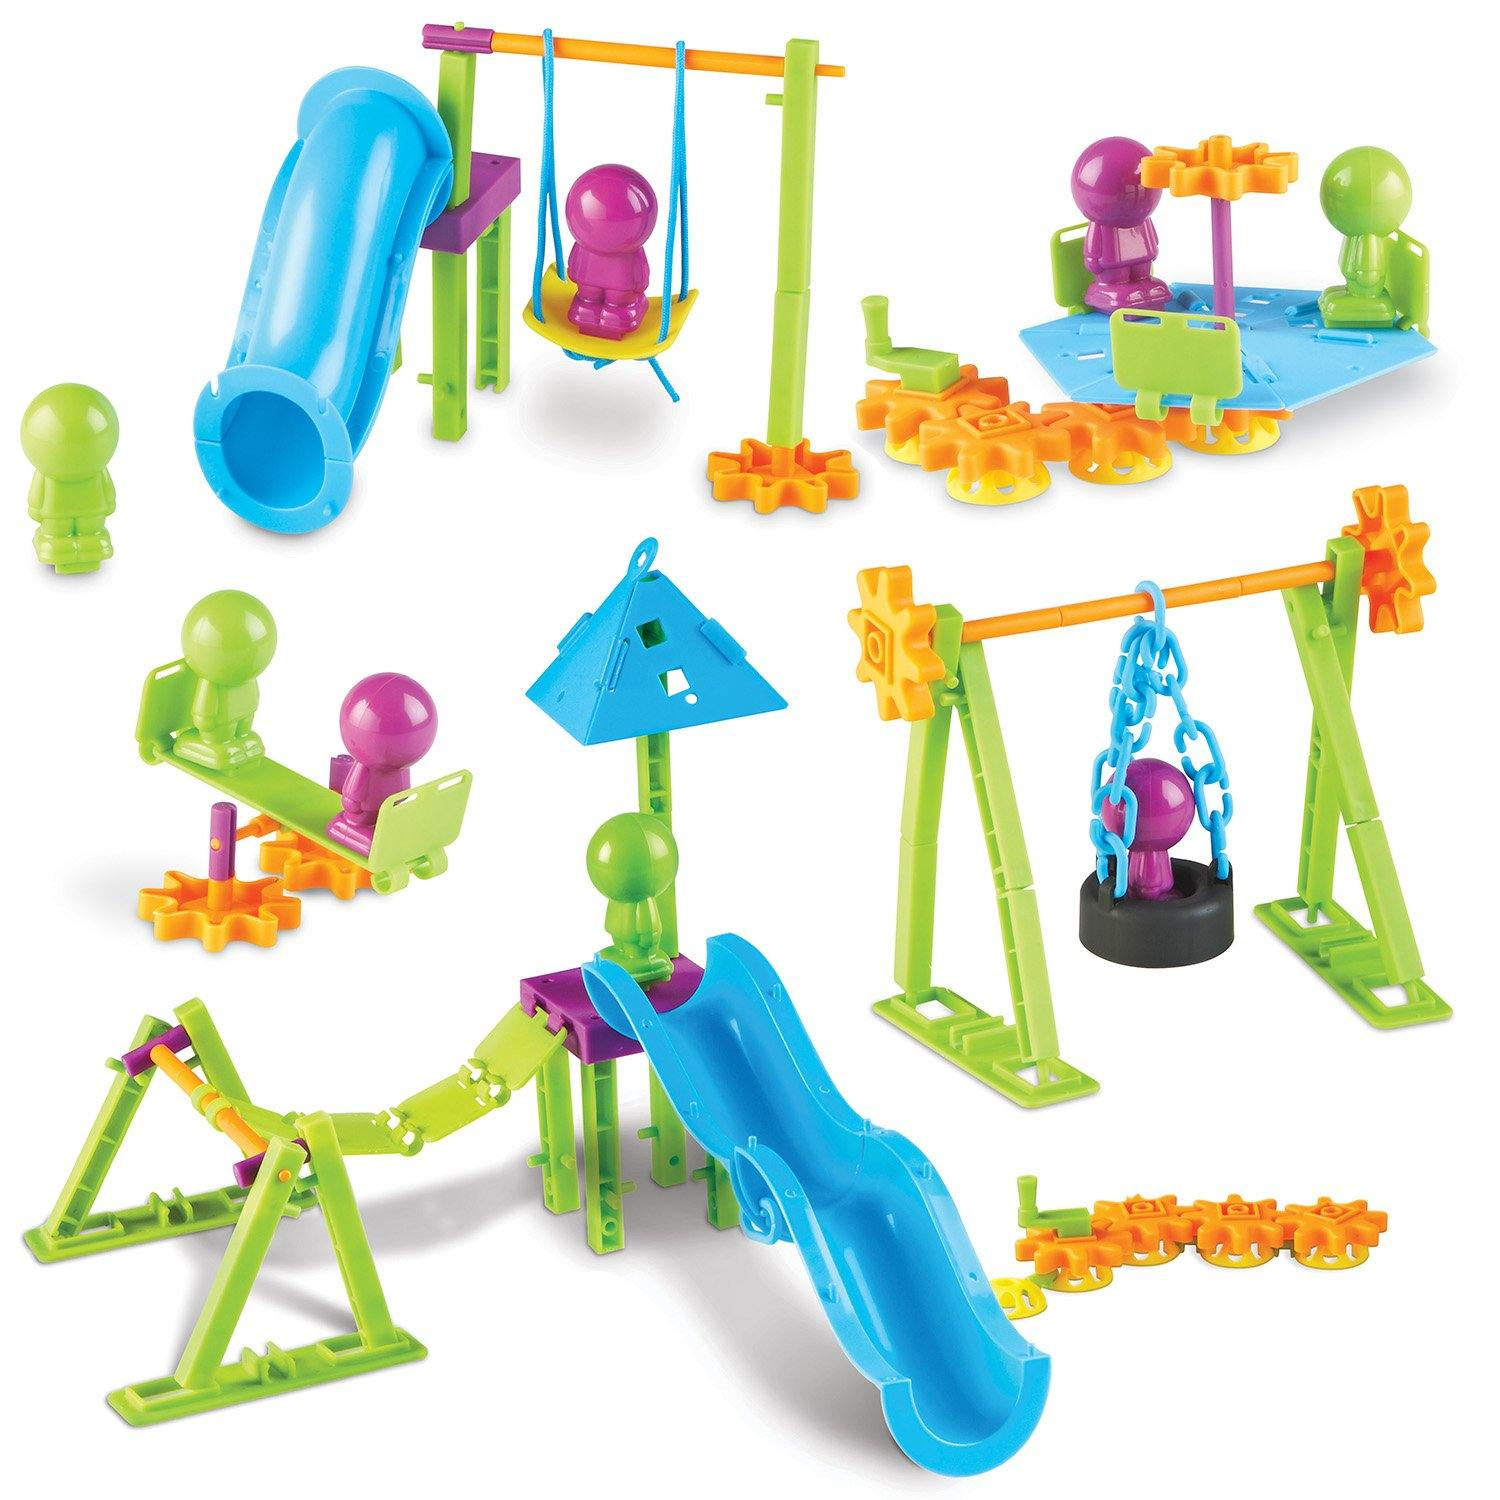 Various components of playground engineering kit